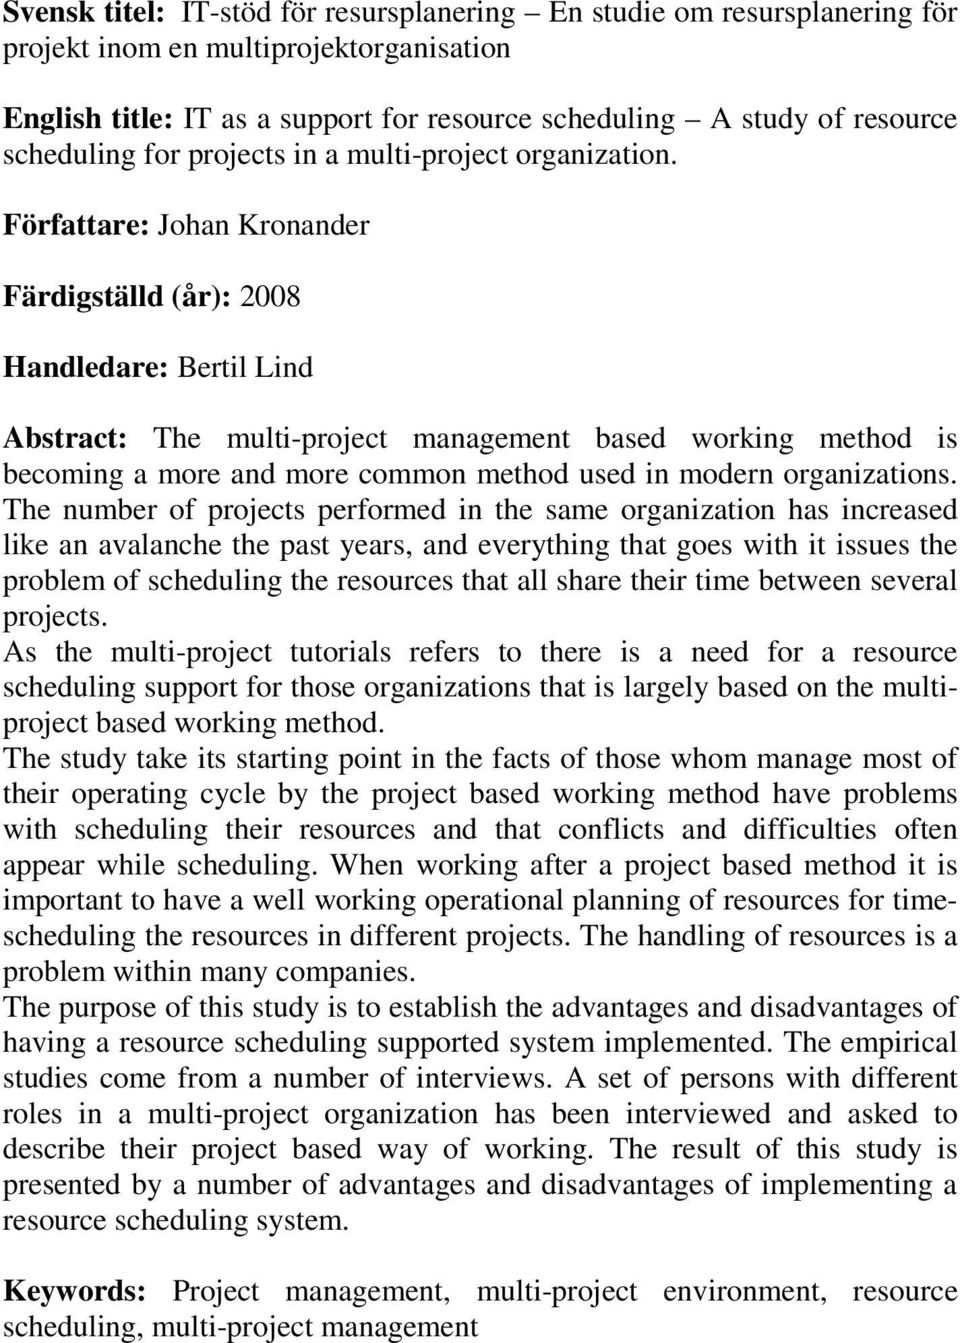 Författare: Johan Kronander Färdigställd (år): 2008 Handledare: Bertil Lind Abstract: The multi-project management based working method is becoming a more and more common method used in modern